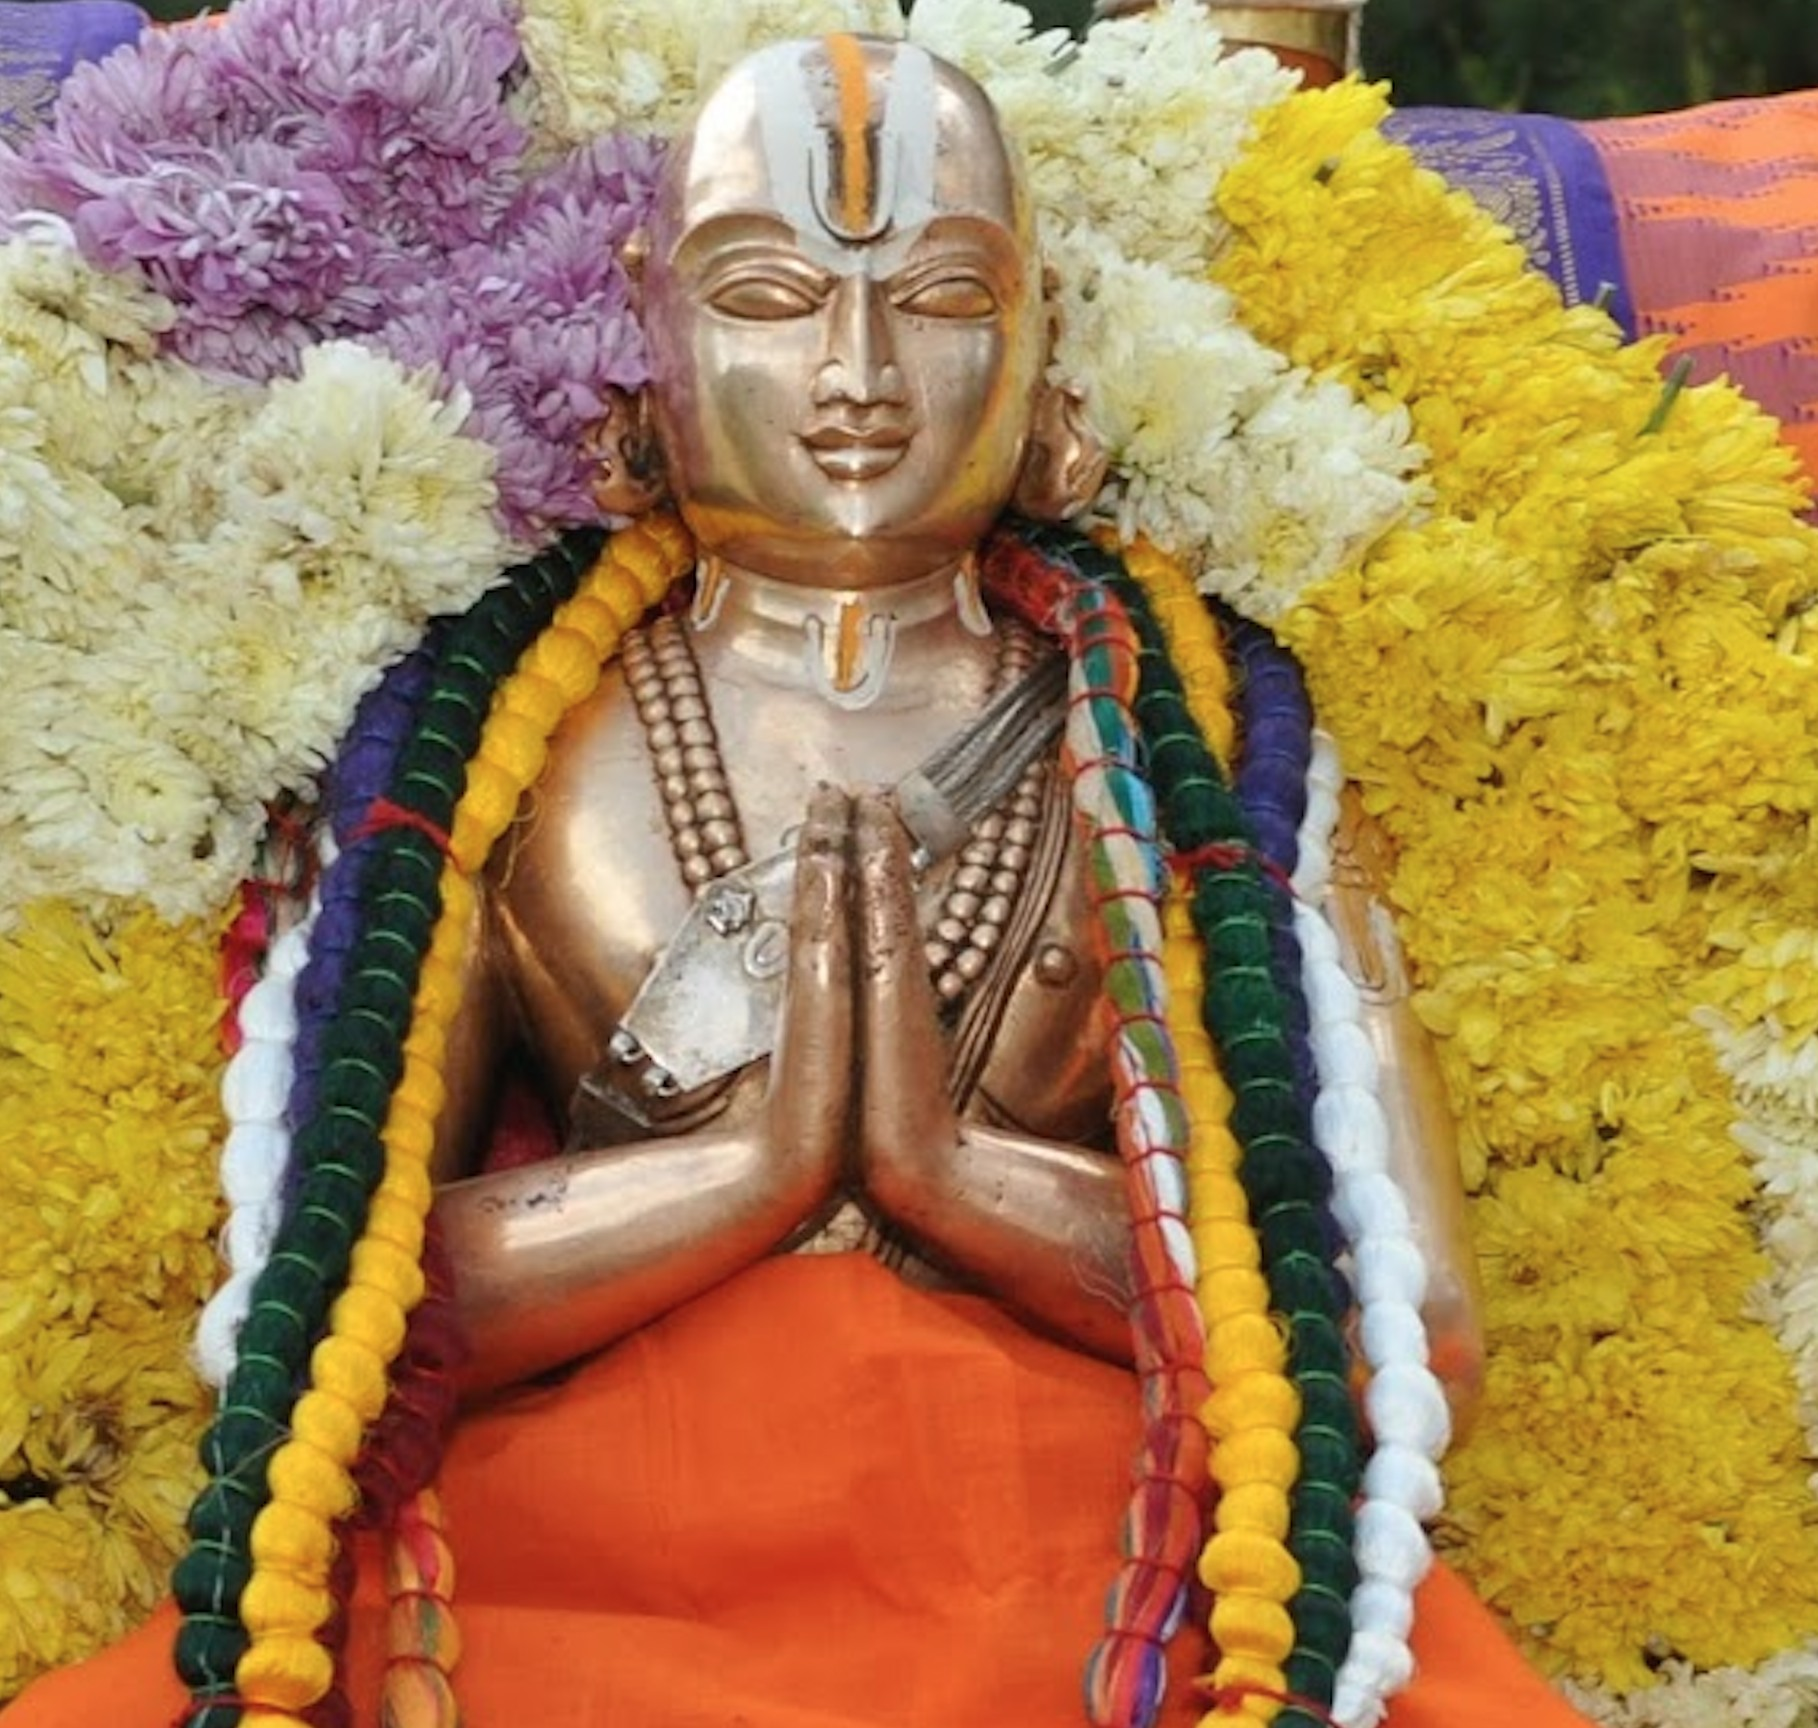 Happy Shri Ramanujacharya Jayanti Wallpapers for Free Download